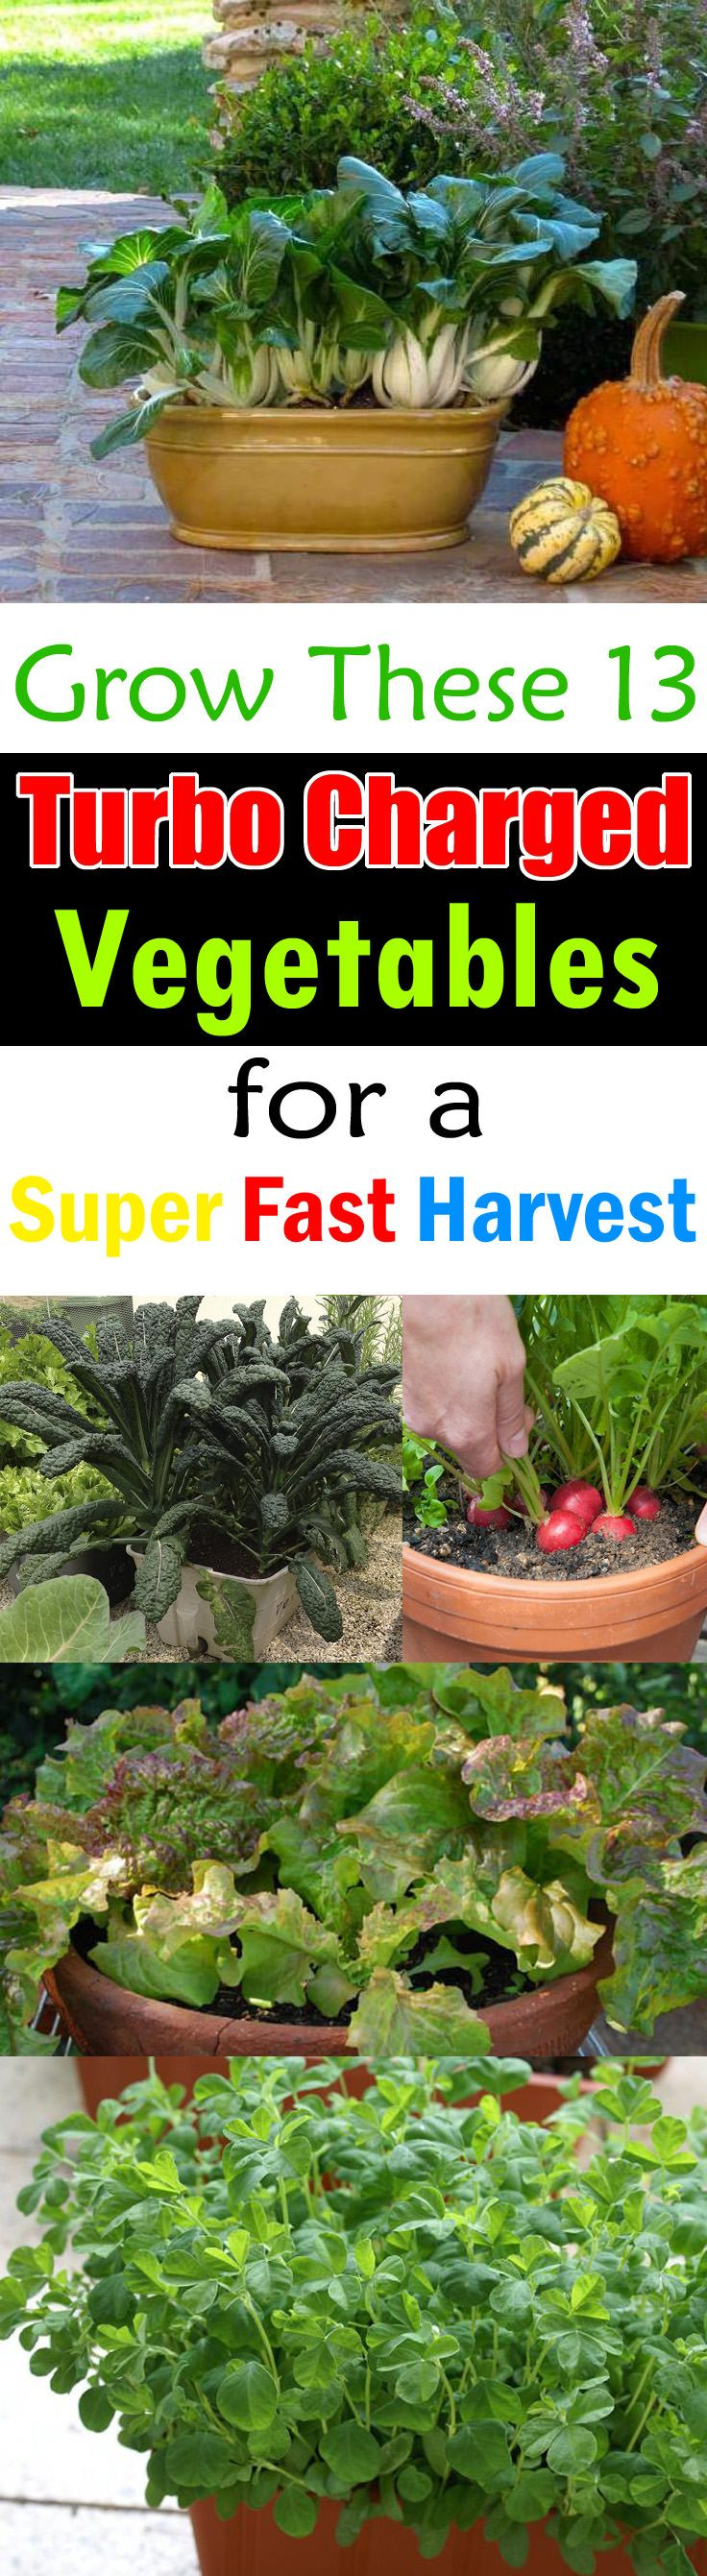 Best 25 growing vegetables ideas on pinterest compost growing vegetables indoors and how to - Growing vegetables indoors practical tips ...